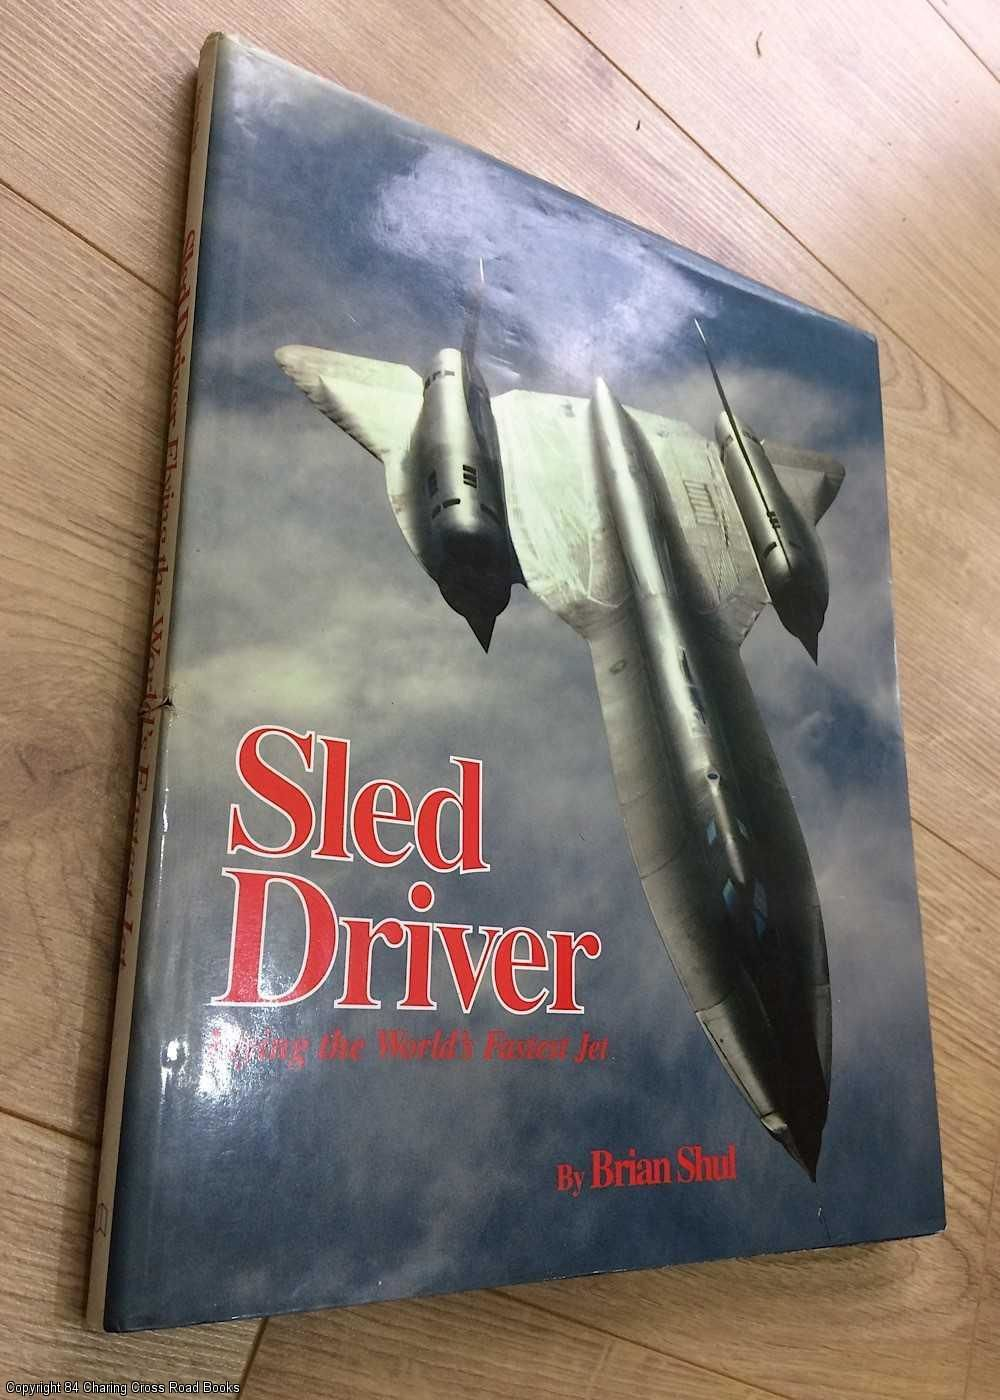 9781857800029 - Sled Driver: Flying the World's Fastest